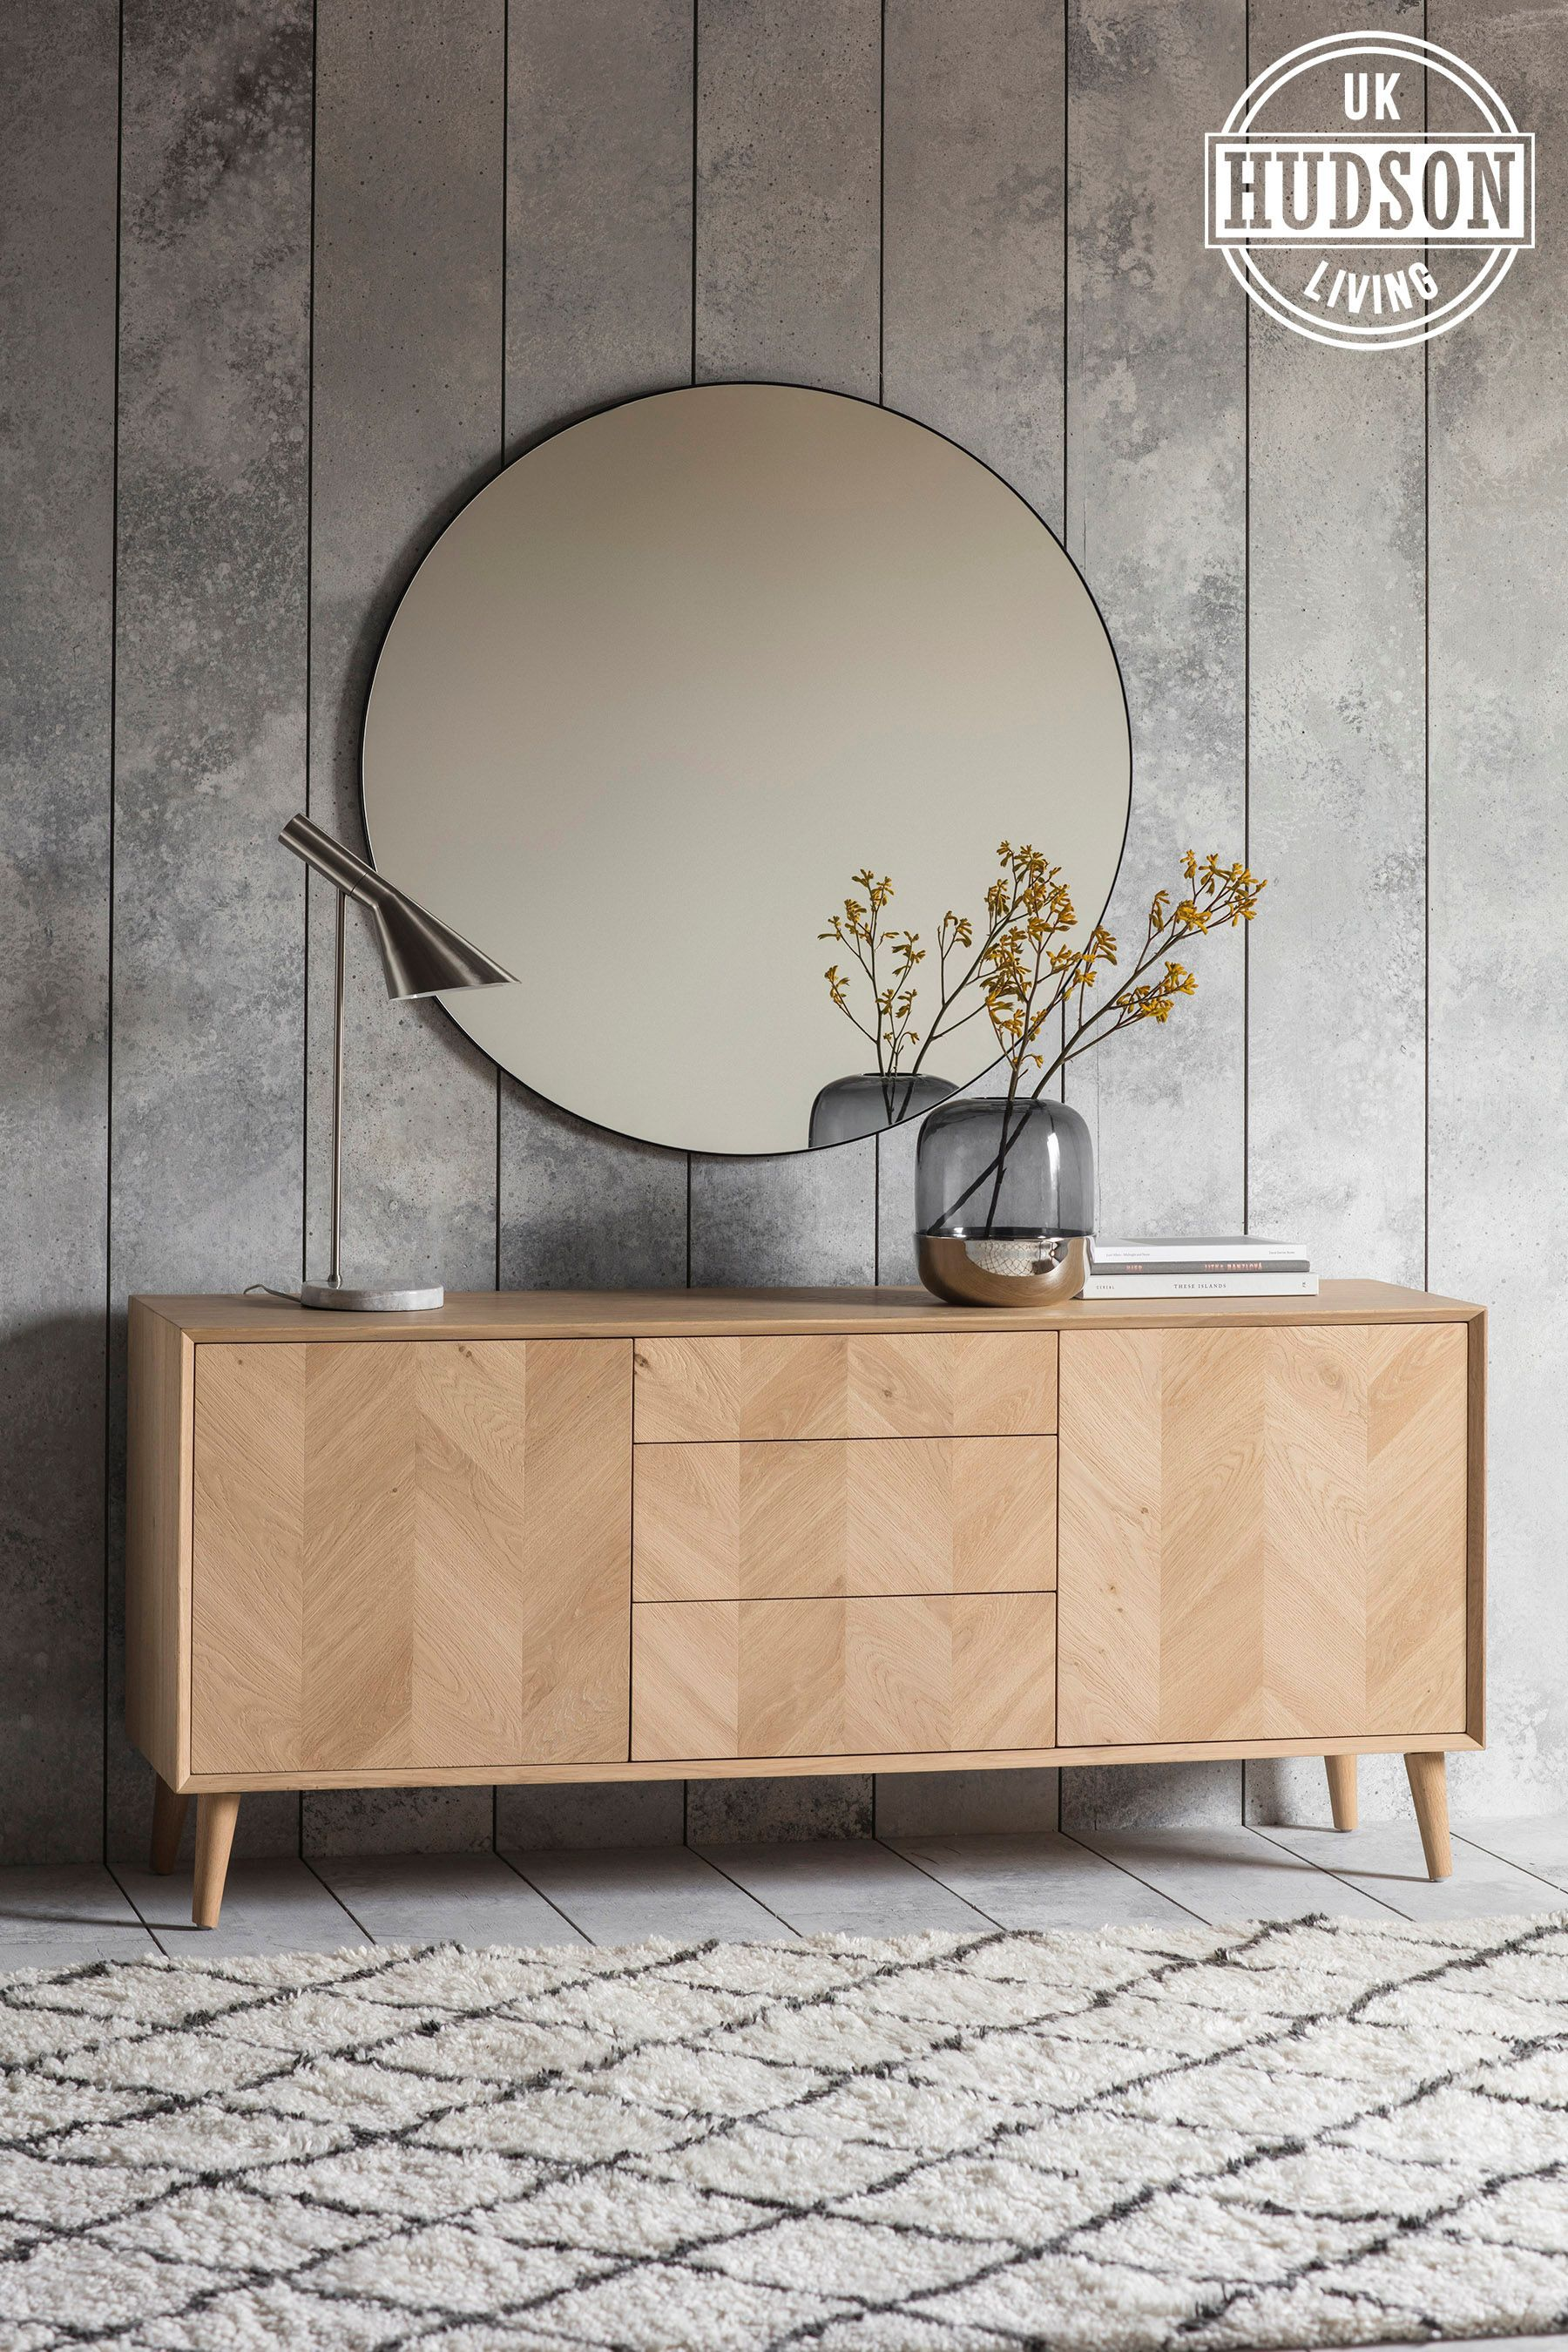 Groovy Buy Hudson Living Milano Sideboard From The Next Uk Online Download Free Architecture Designs Scobabritishbridgeorg